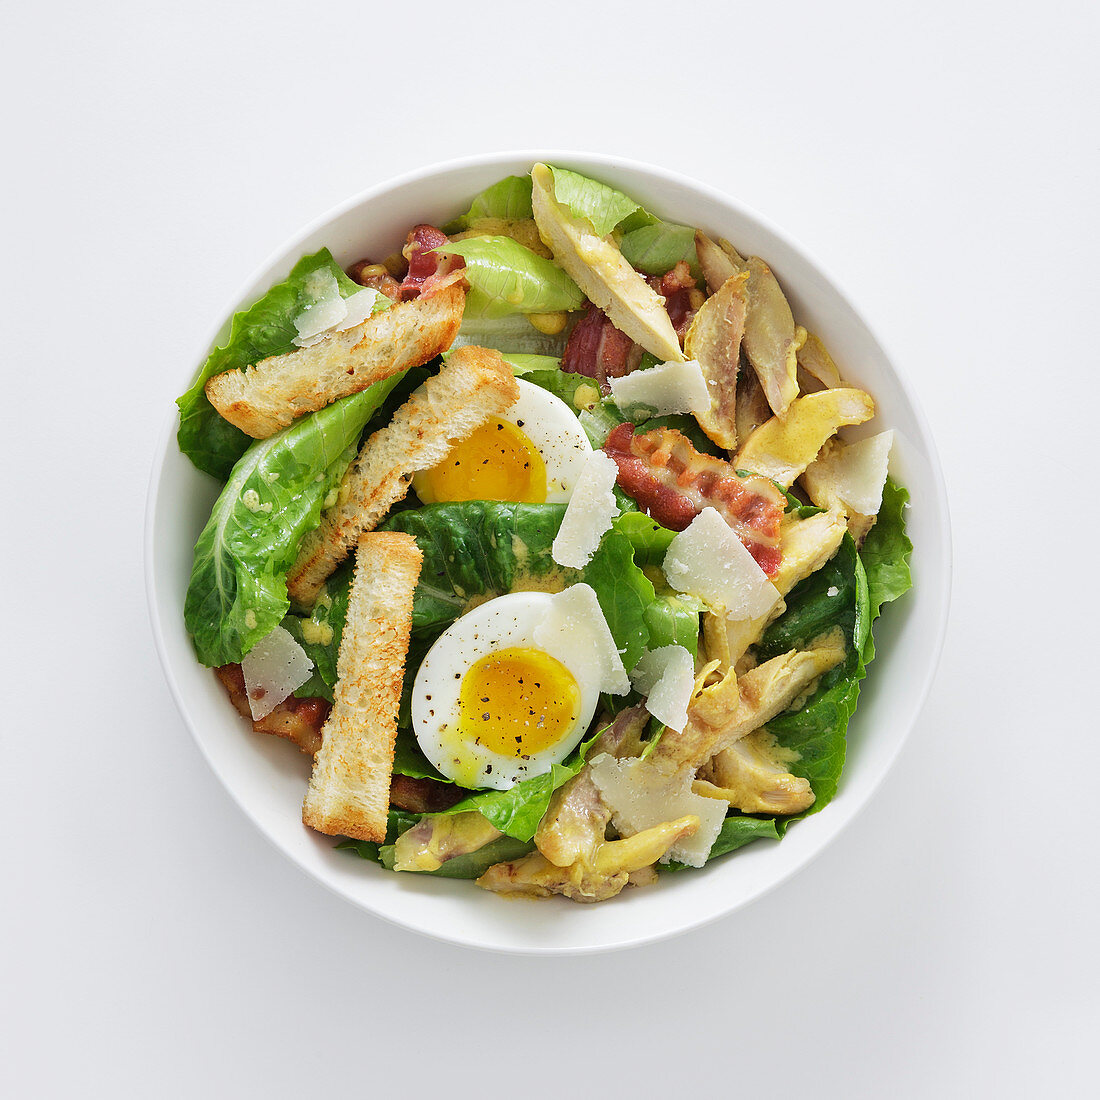 Caesar salad with bacon and soft-boiled egg